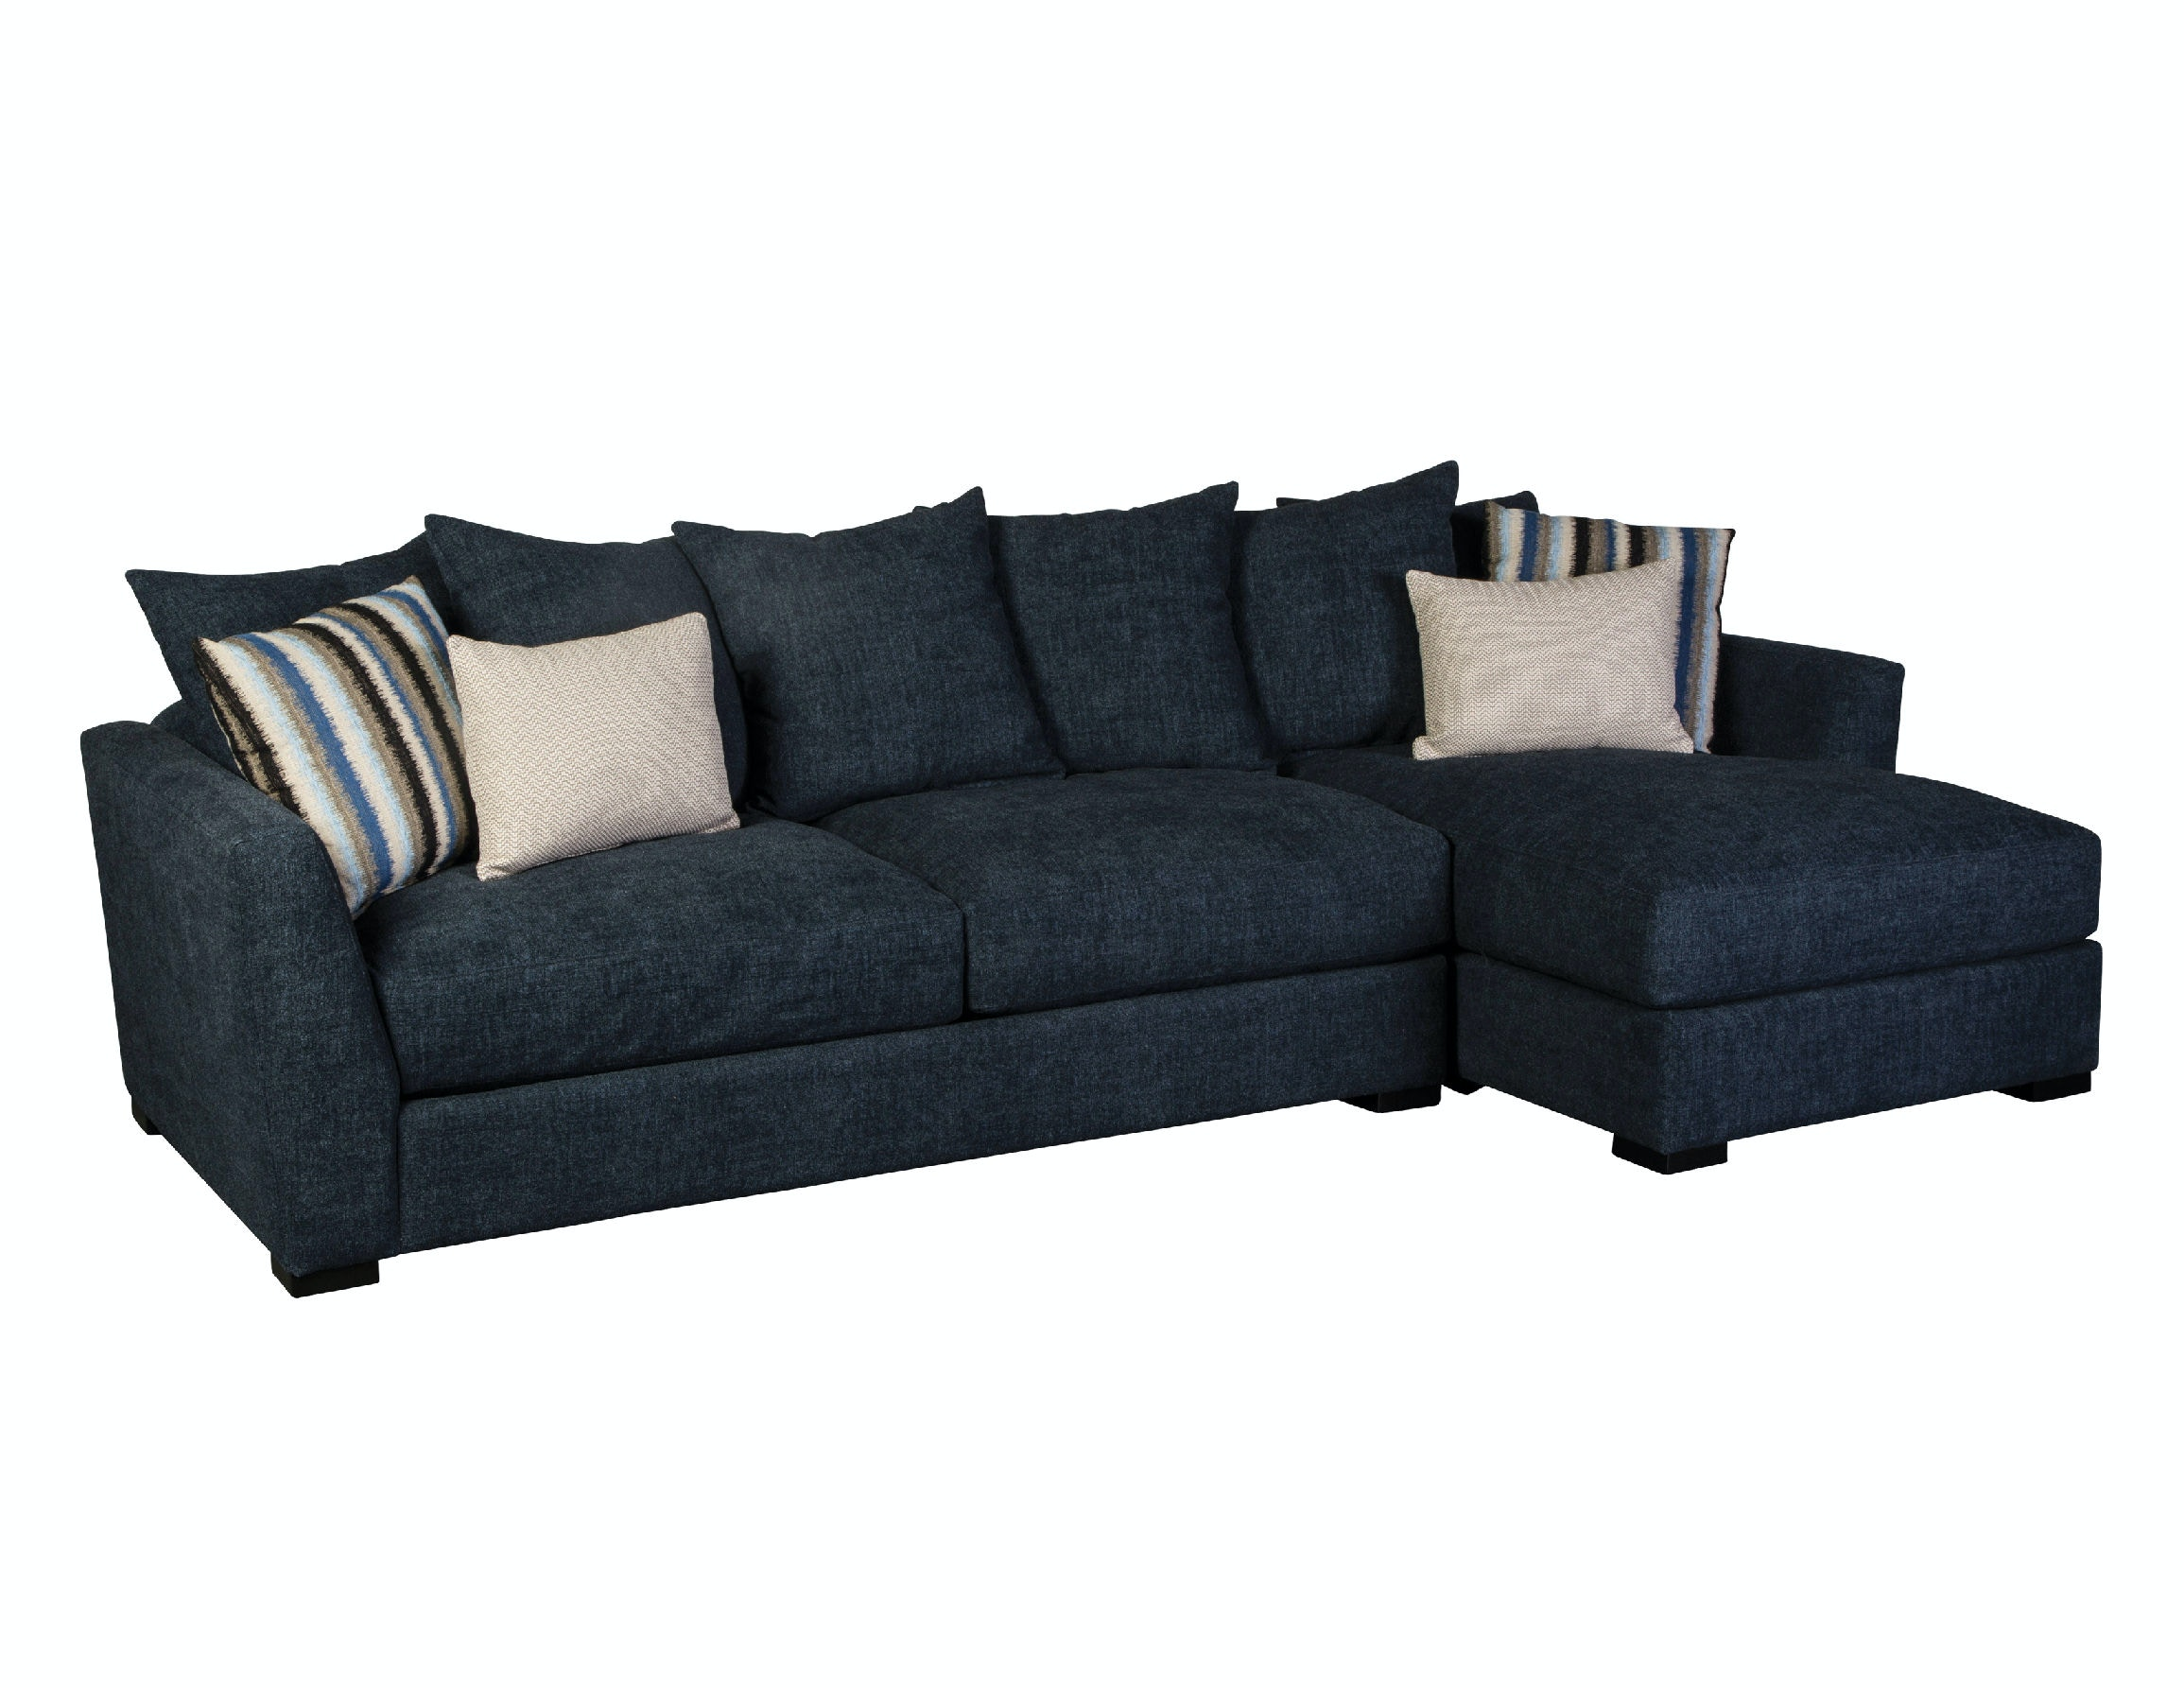 Furniture Stores In Dickinson Nd #26: Jonathan Louis International Harvey Sectional 162-Sectional.